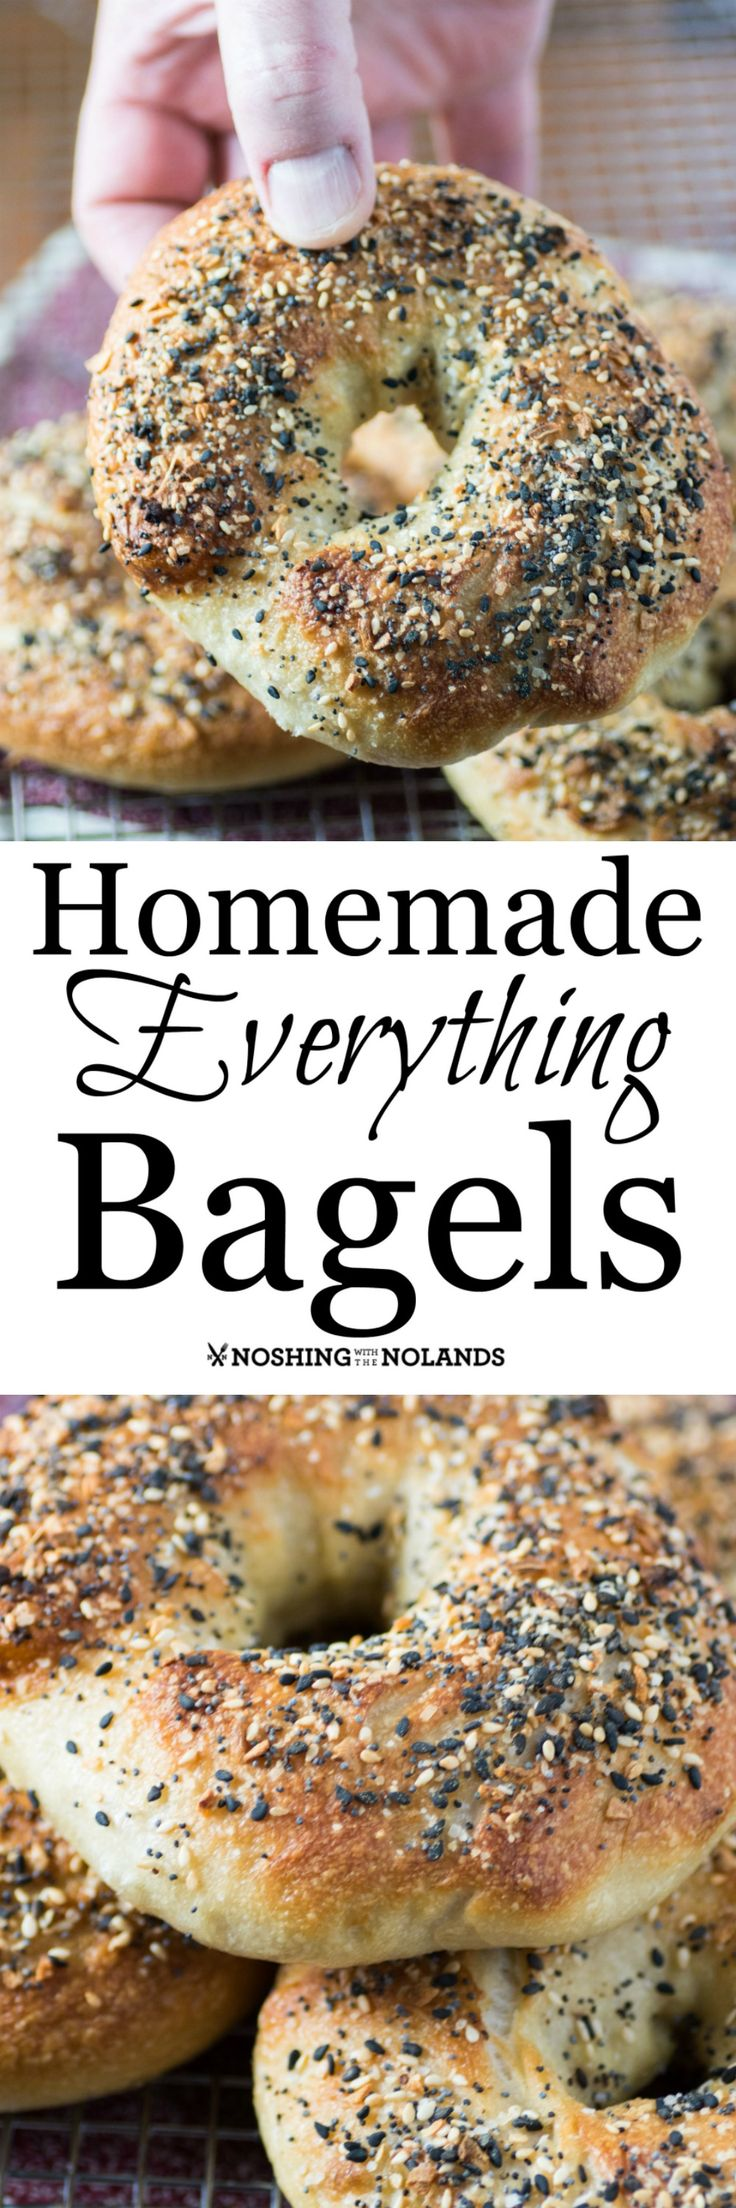 Homemade Everything Bagels by Noshing With The Nolands has all the flavor you love with that wonderful chewy texture!